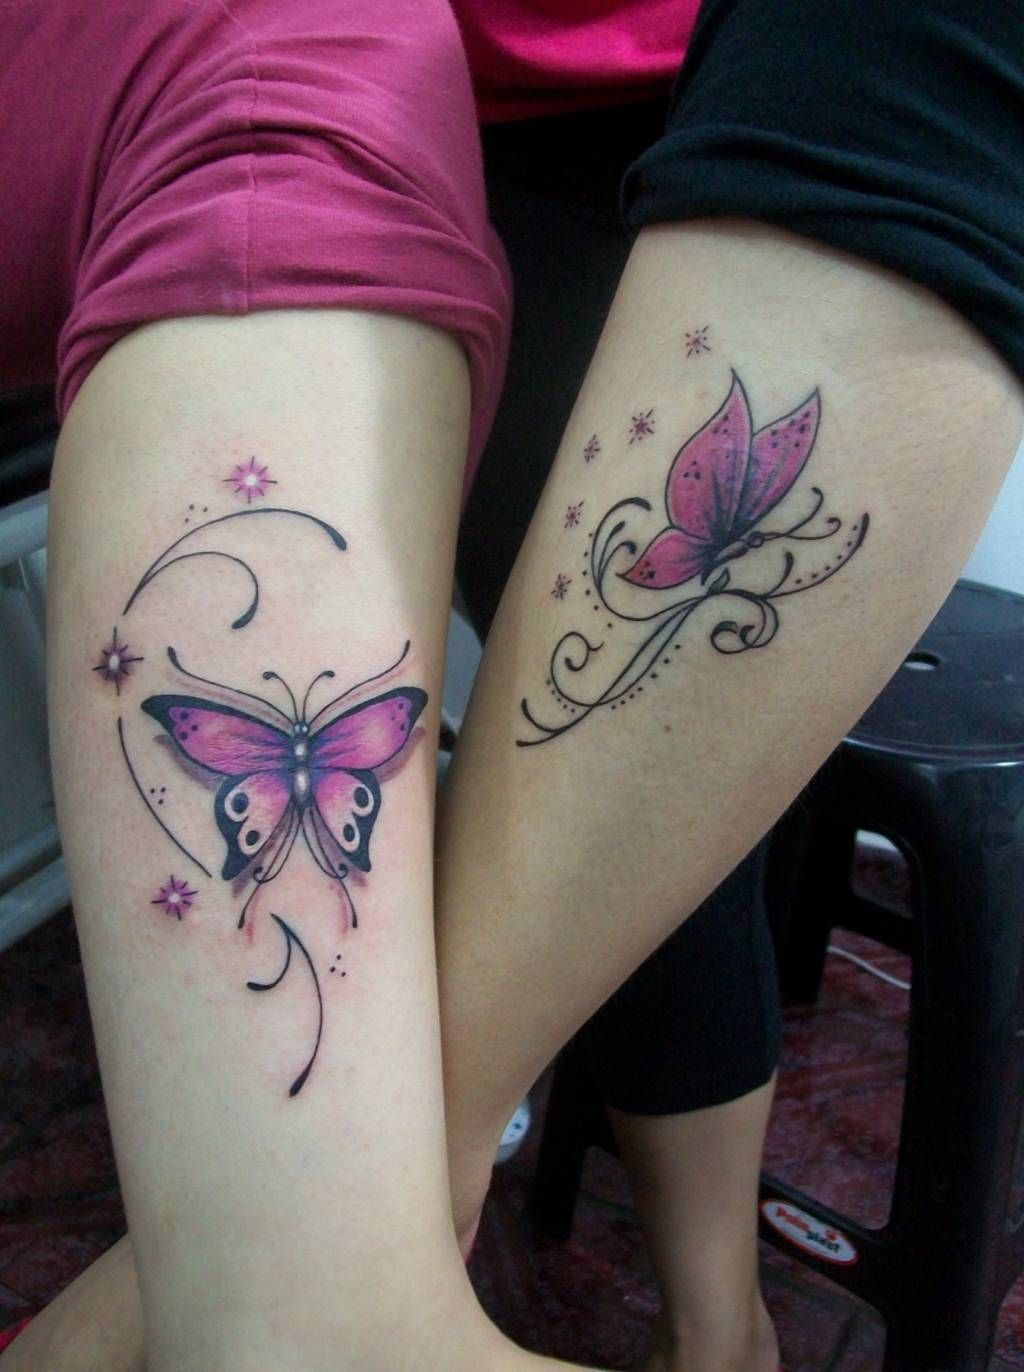 Pink Butterfly Tattoos : butterfly, tattoos, Trending, Tattoo, Ideas, Across, Globe, Purple, Butterfly, Tattoo,, Designs,, Tattoos, Images